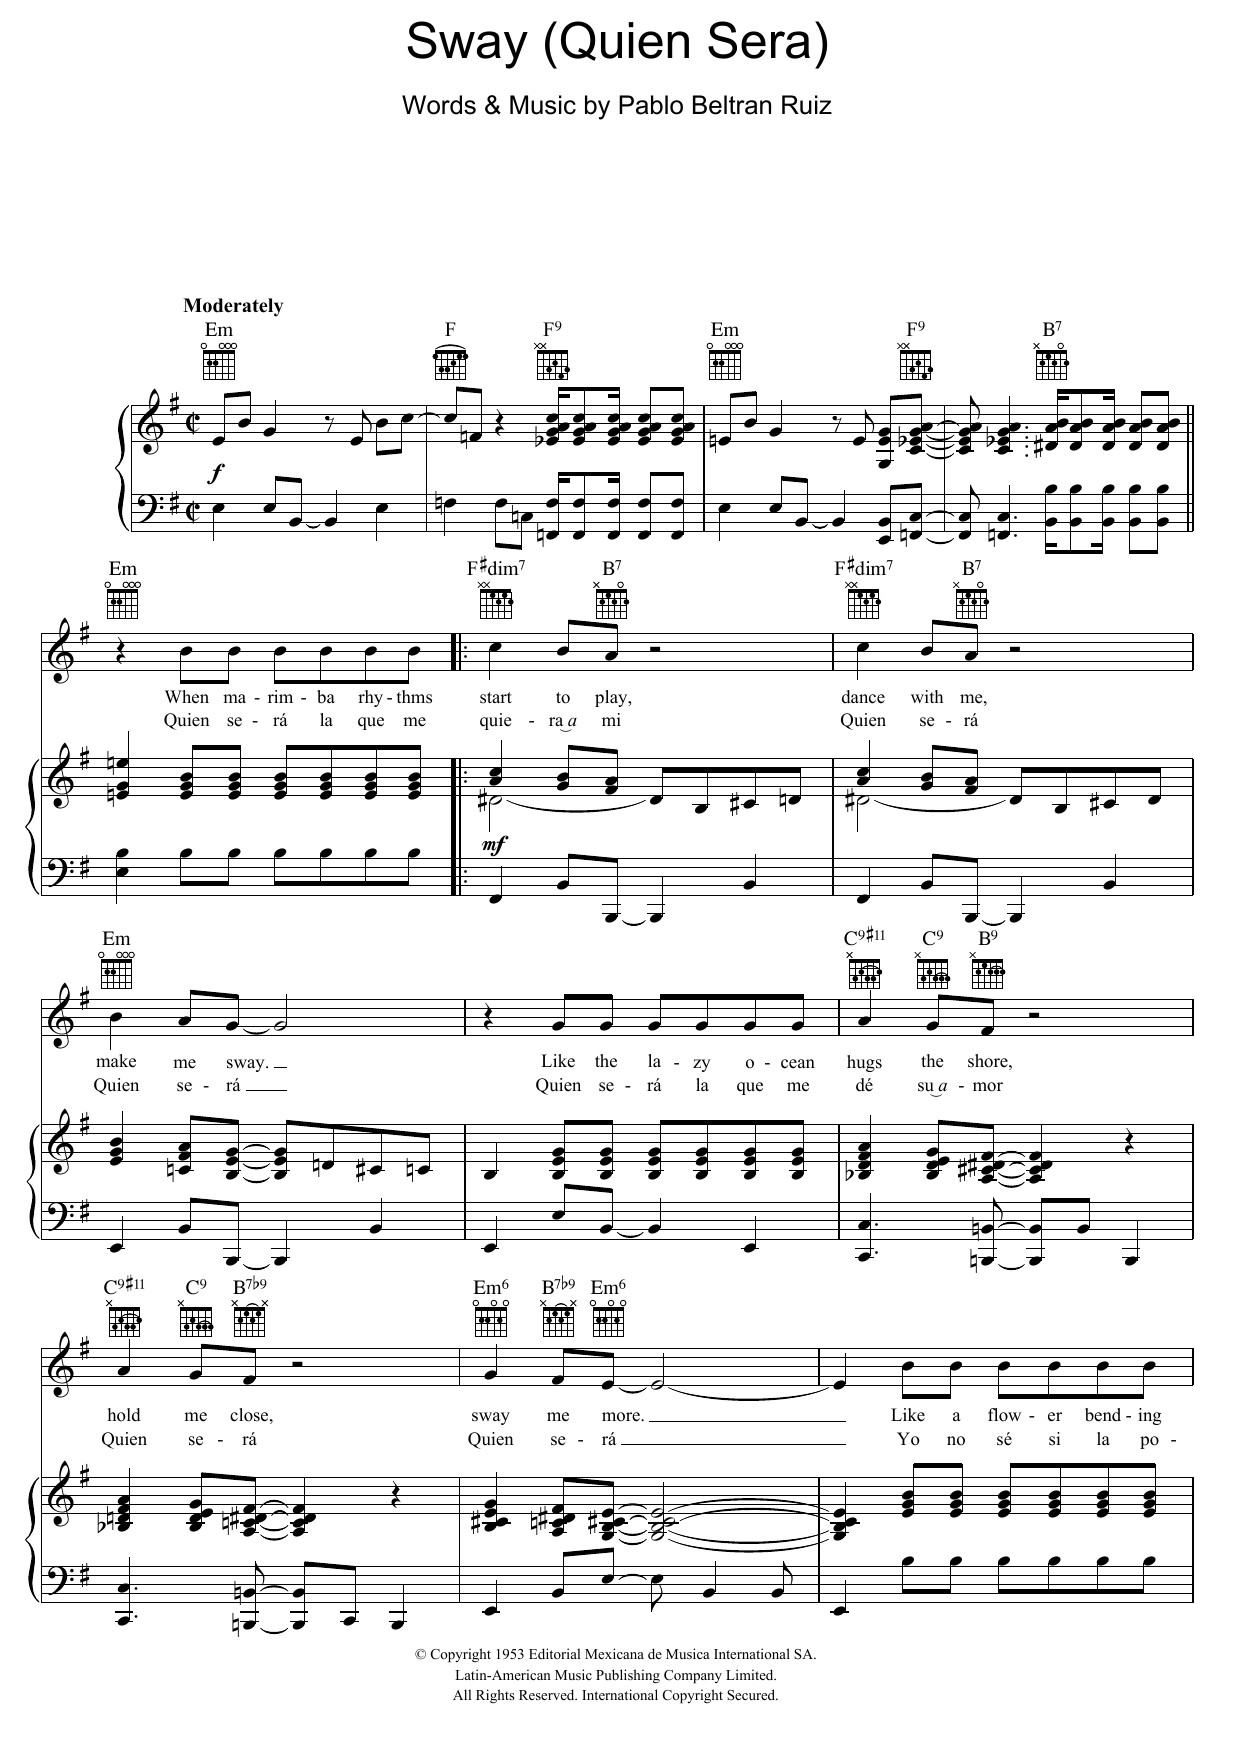 Sway (Quien Sera) sheet music for voice, piano or guitar by Pablo Beltran Ruiz